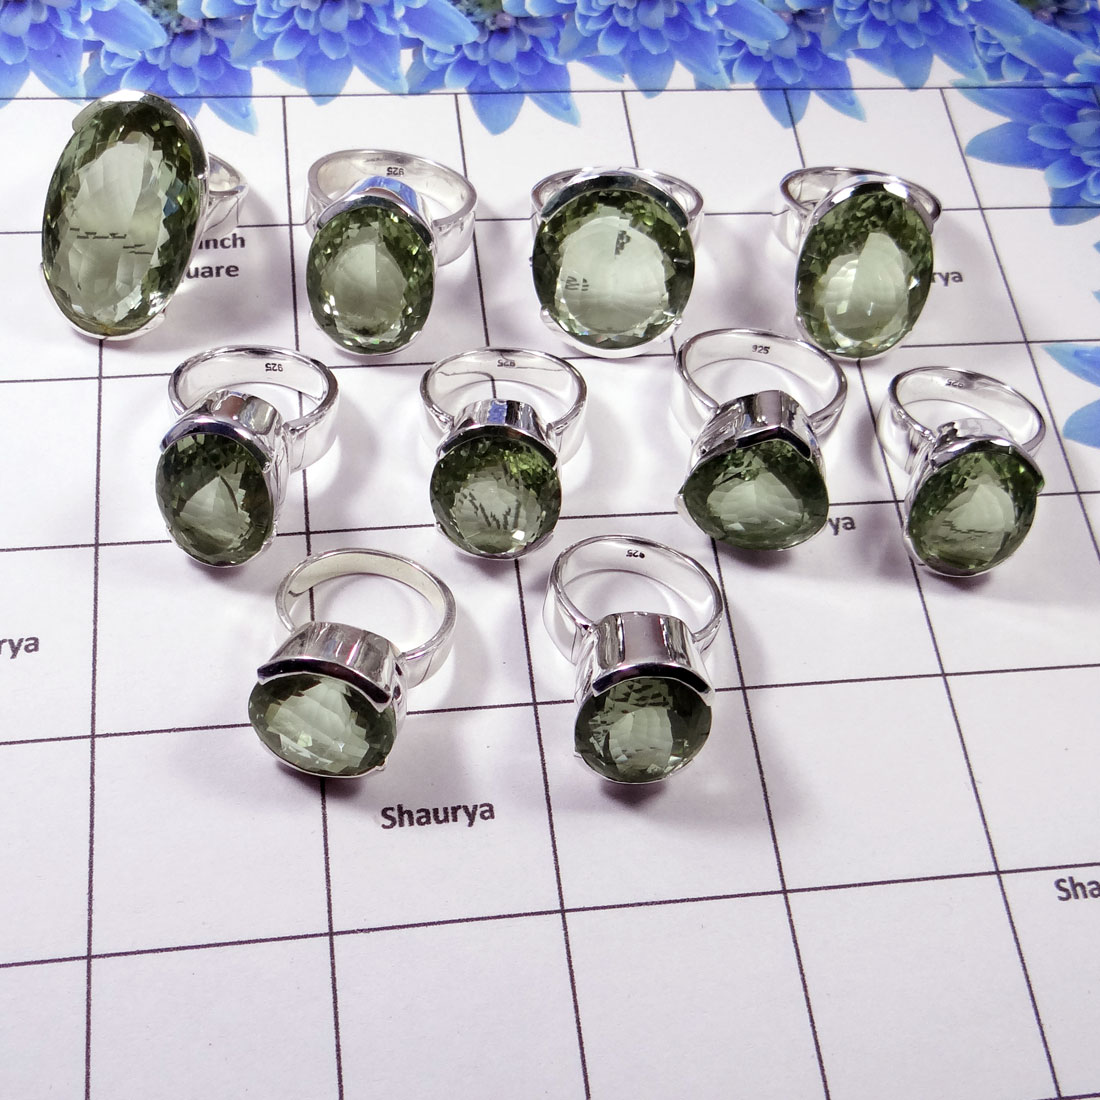 Green Amethyst Ring - WSLR883-150 Gram Mix Shape Cut Green Amethyst 925 Sterling Silver Wholesale Ring Lot 9 To 13 Pcs